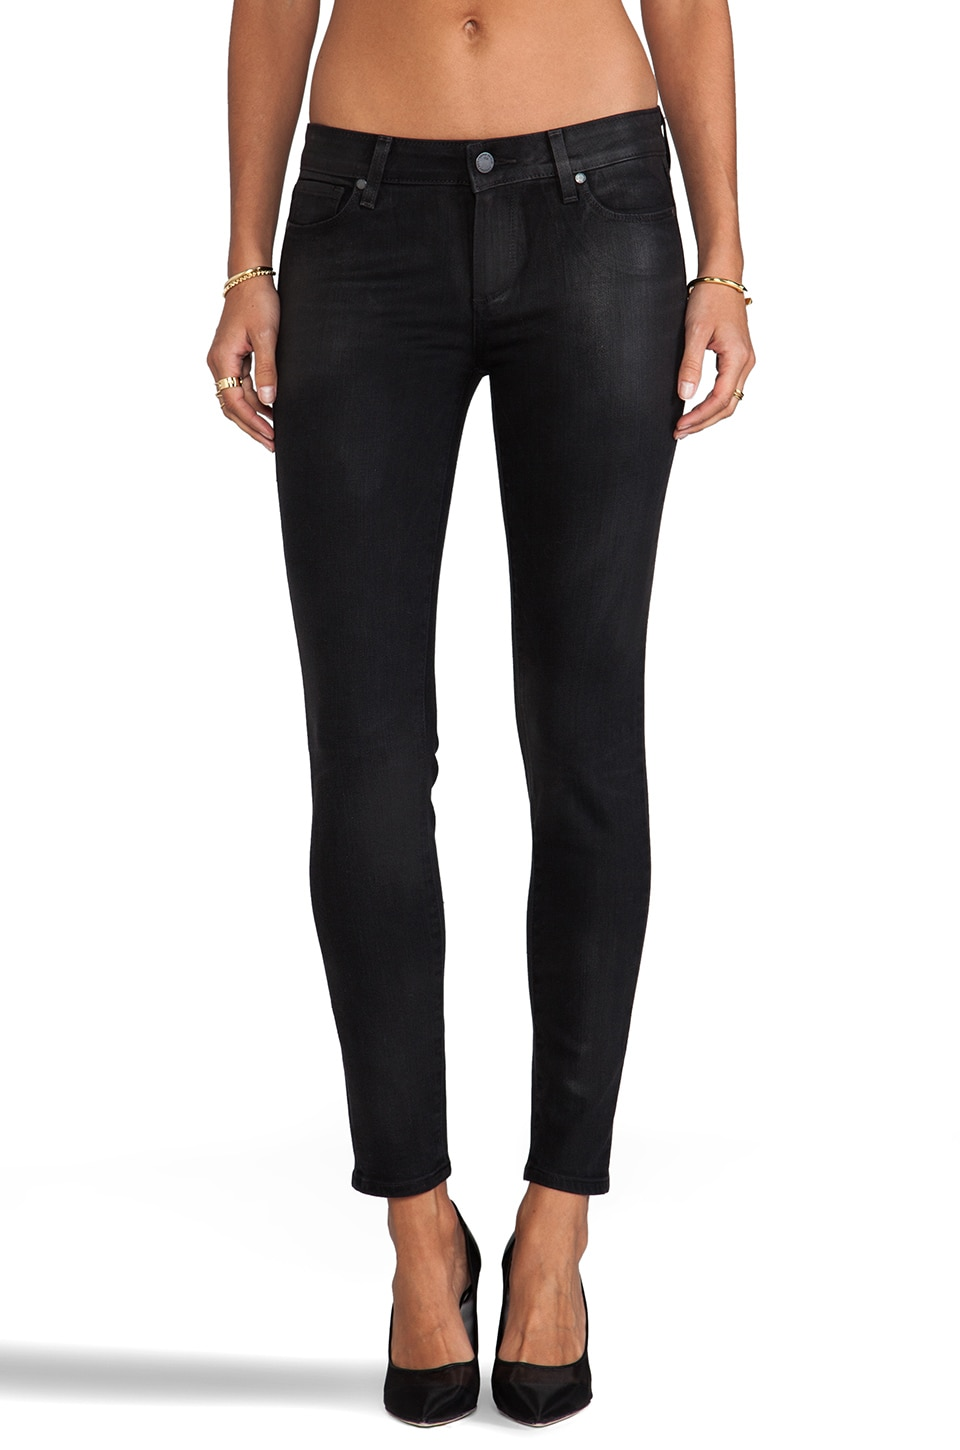 Paige Denim Verdugo Ultra Skinny in Maison